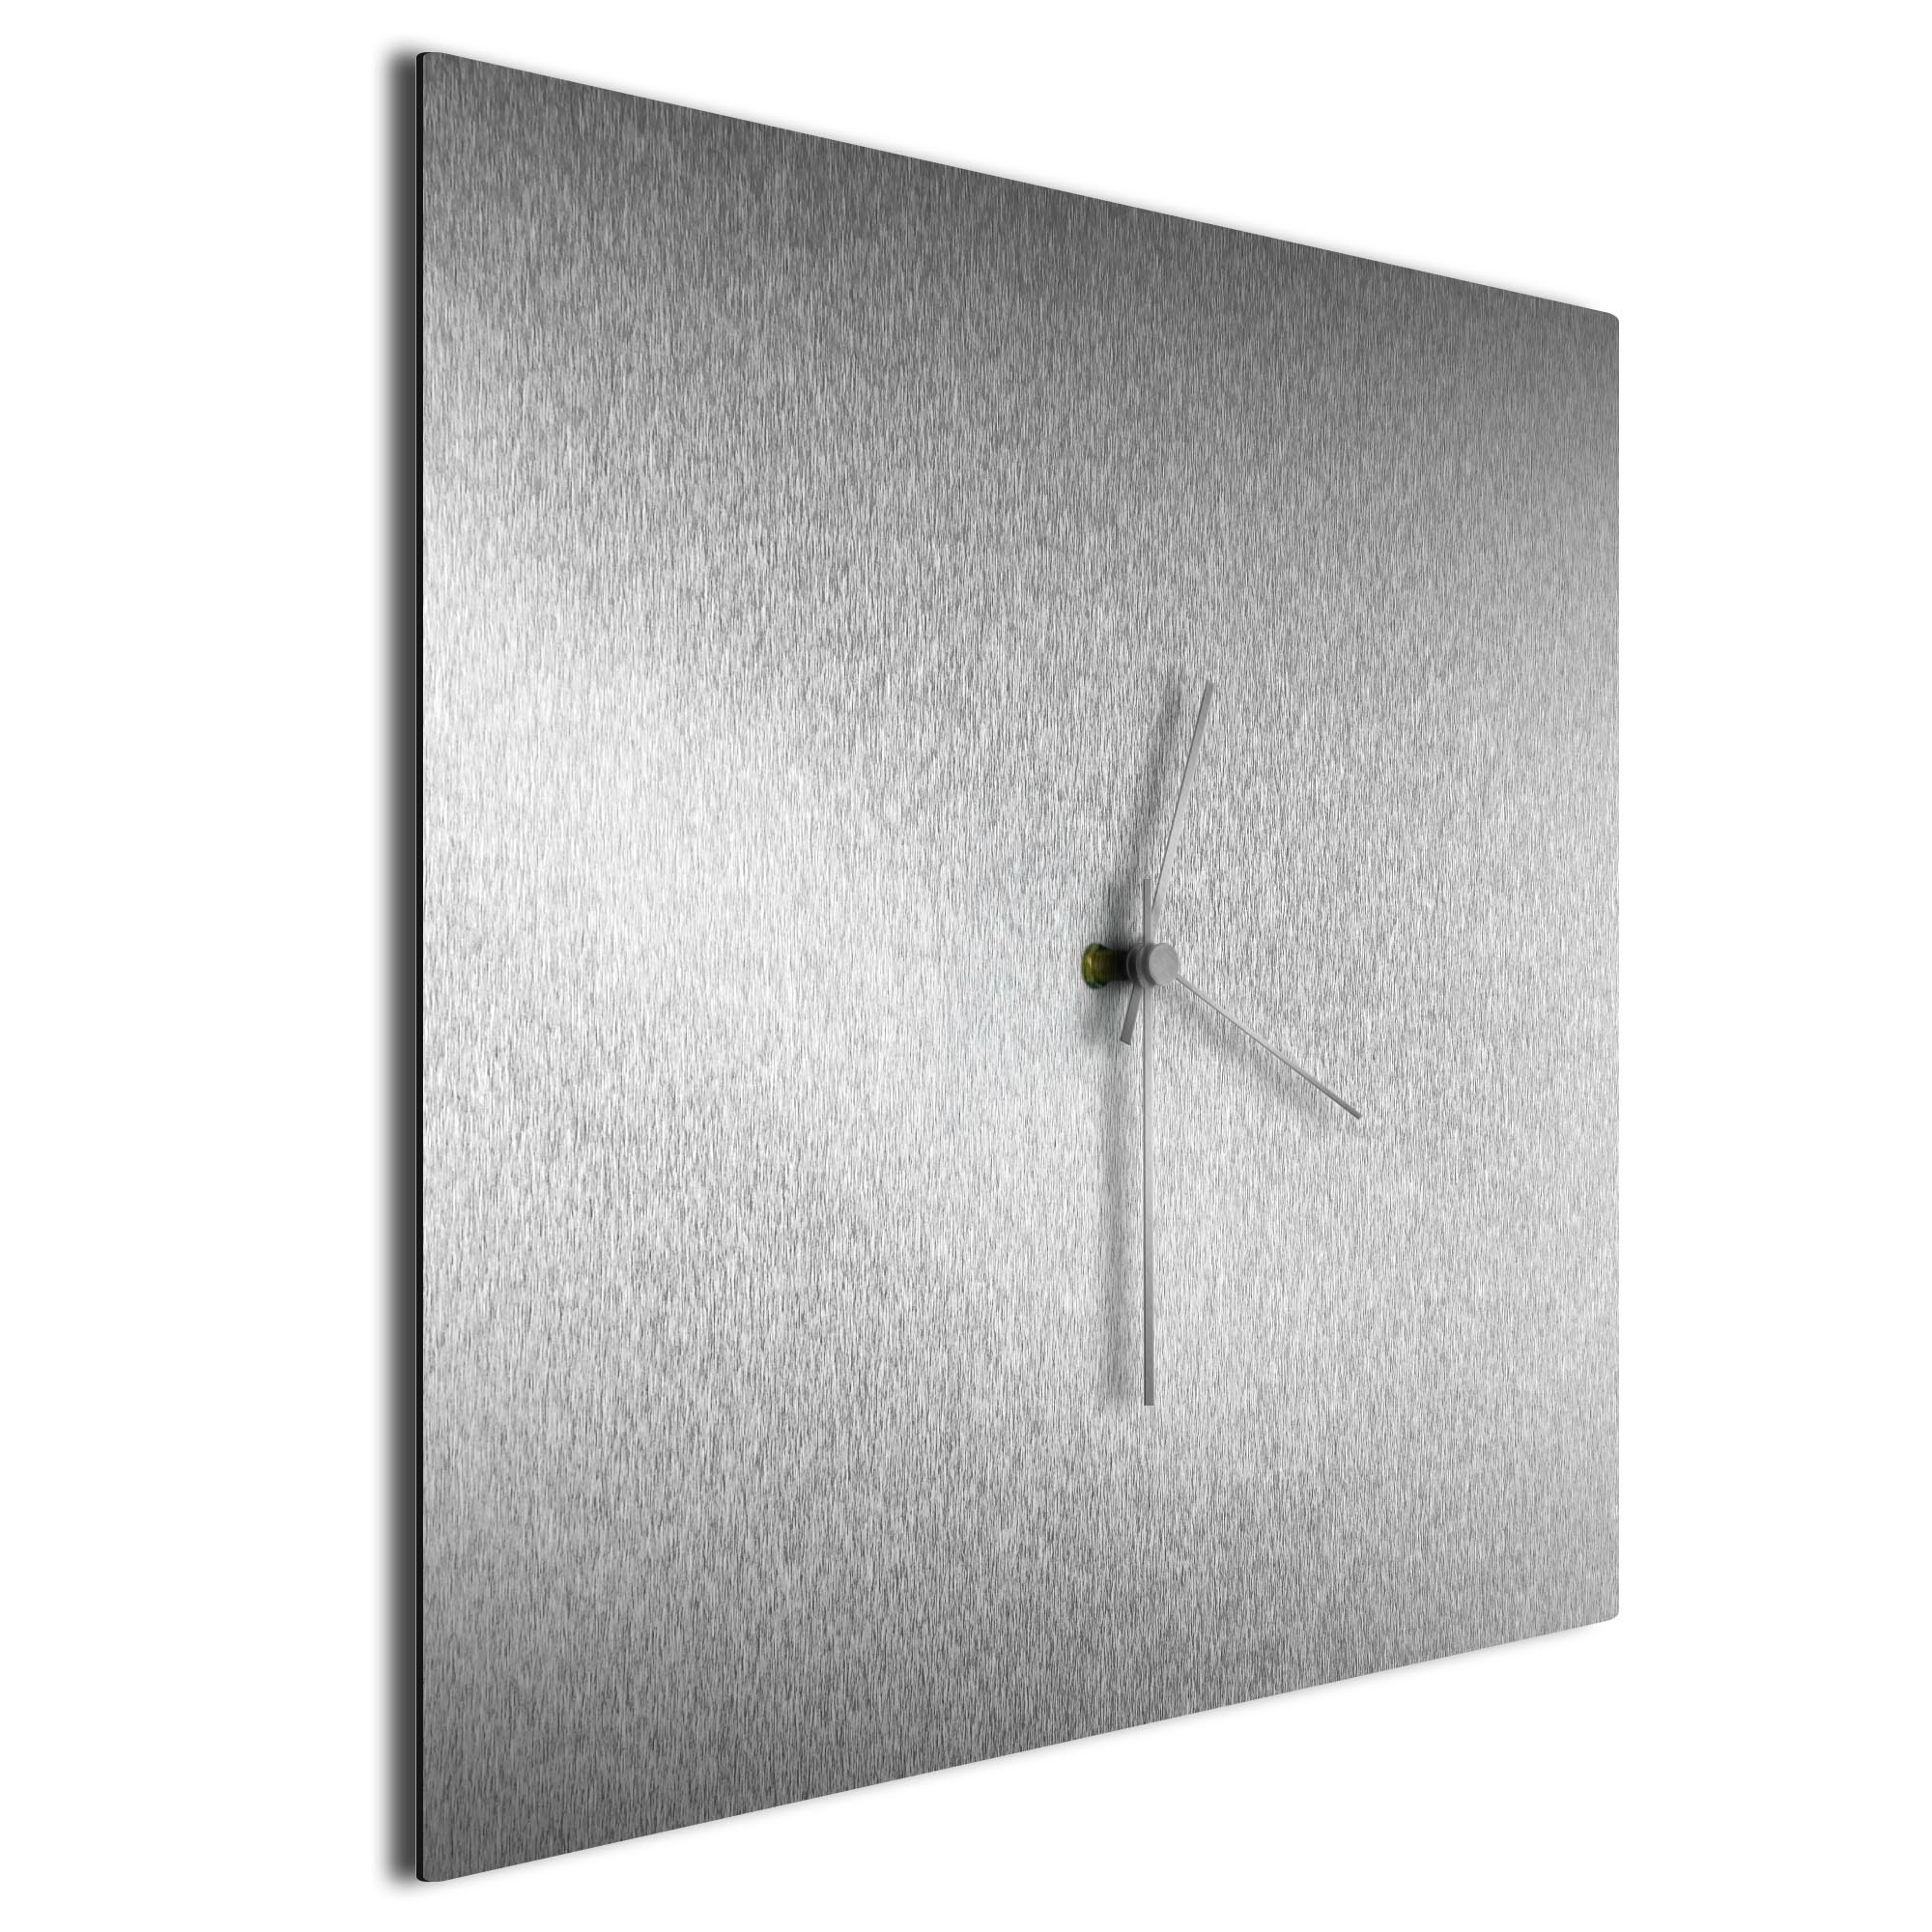 Silversmith Square Clock Large Silver - Image 2